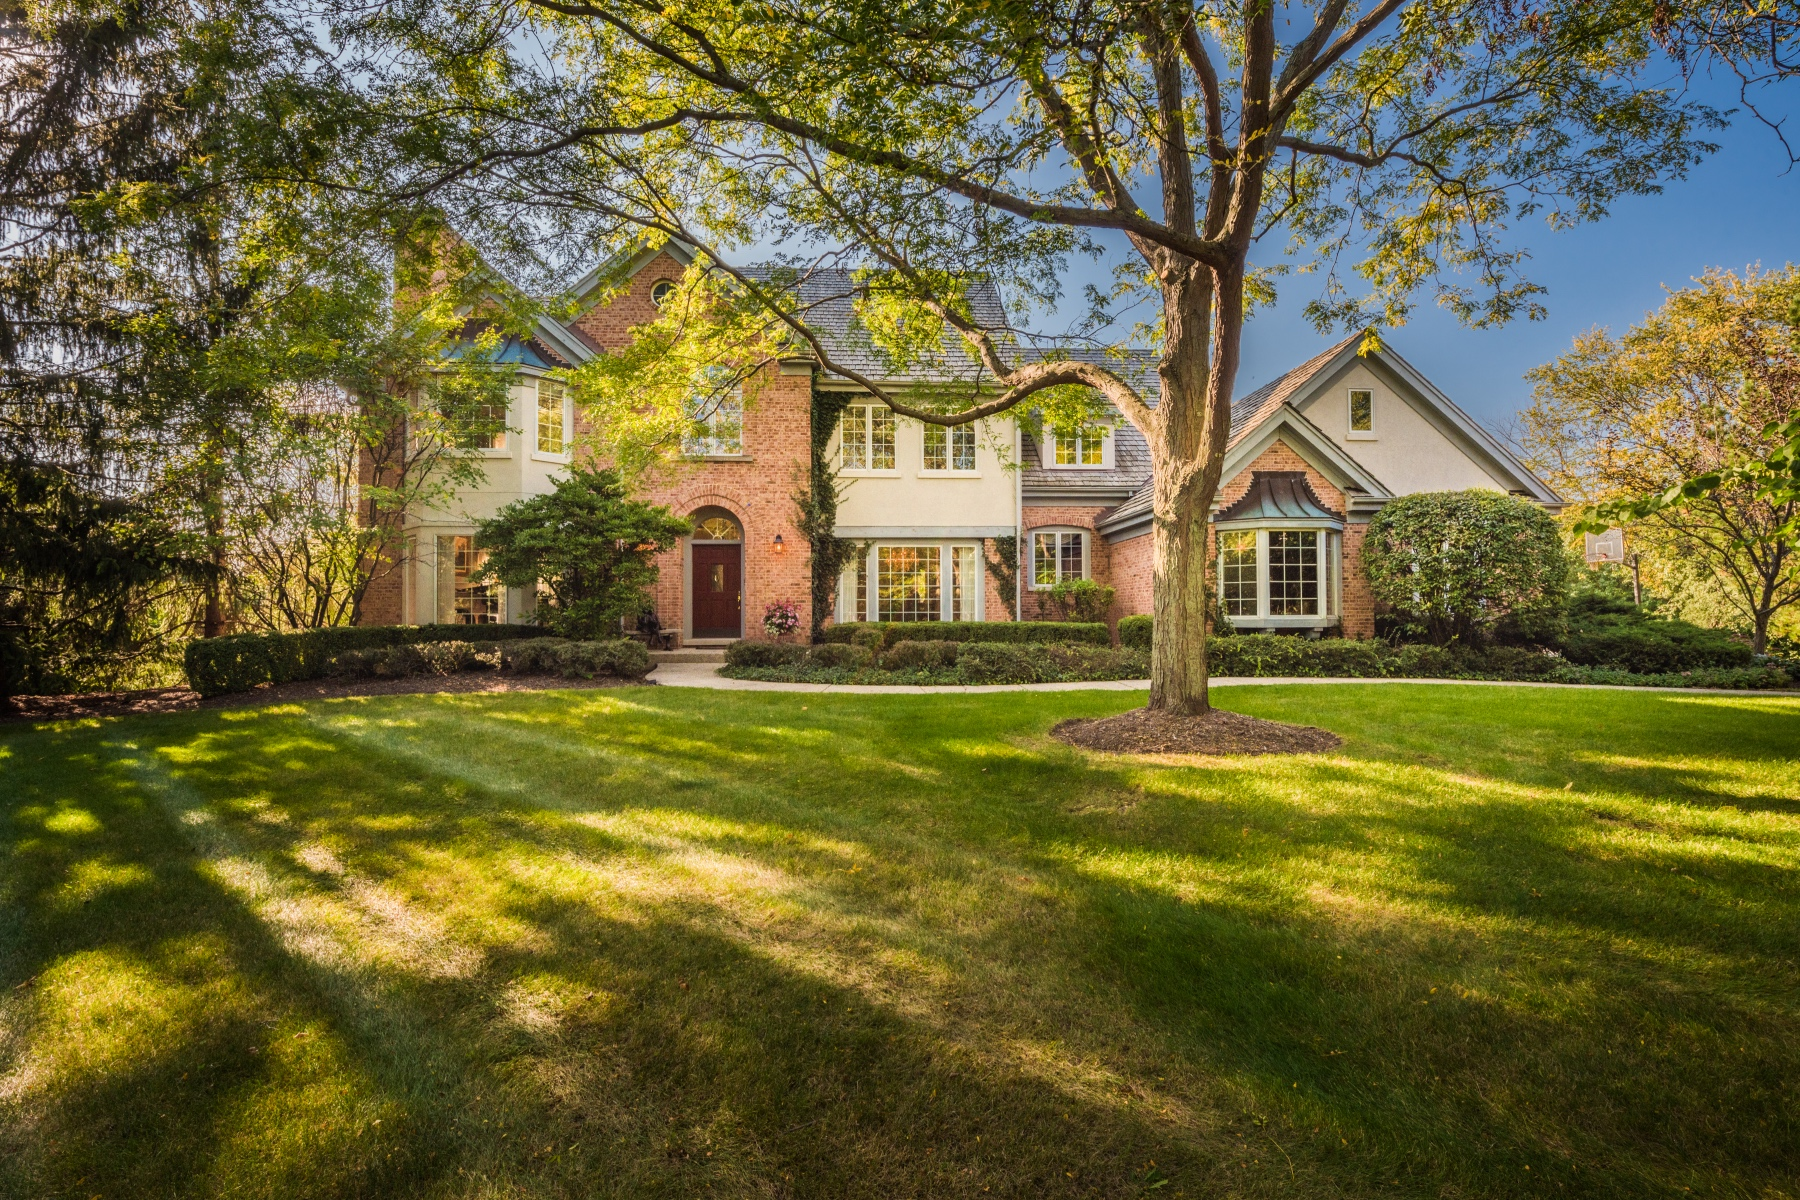 Single Family Home for Sale at 86 Weybridge Lane - WYNSTONE North Barrington, Illinois, 60010 United States